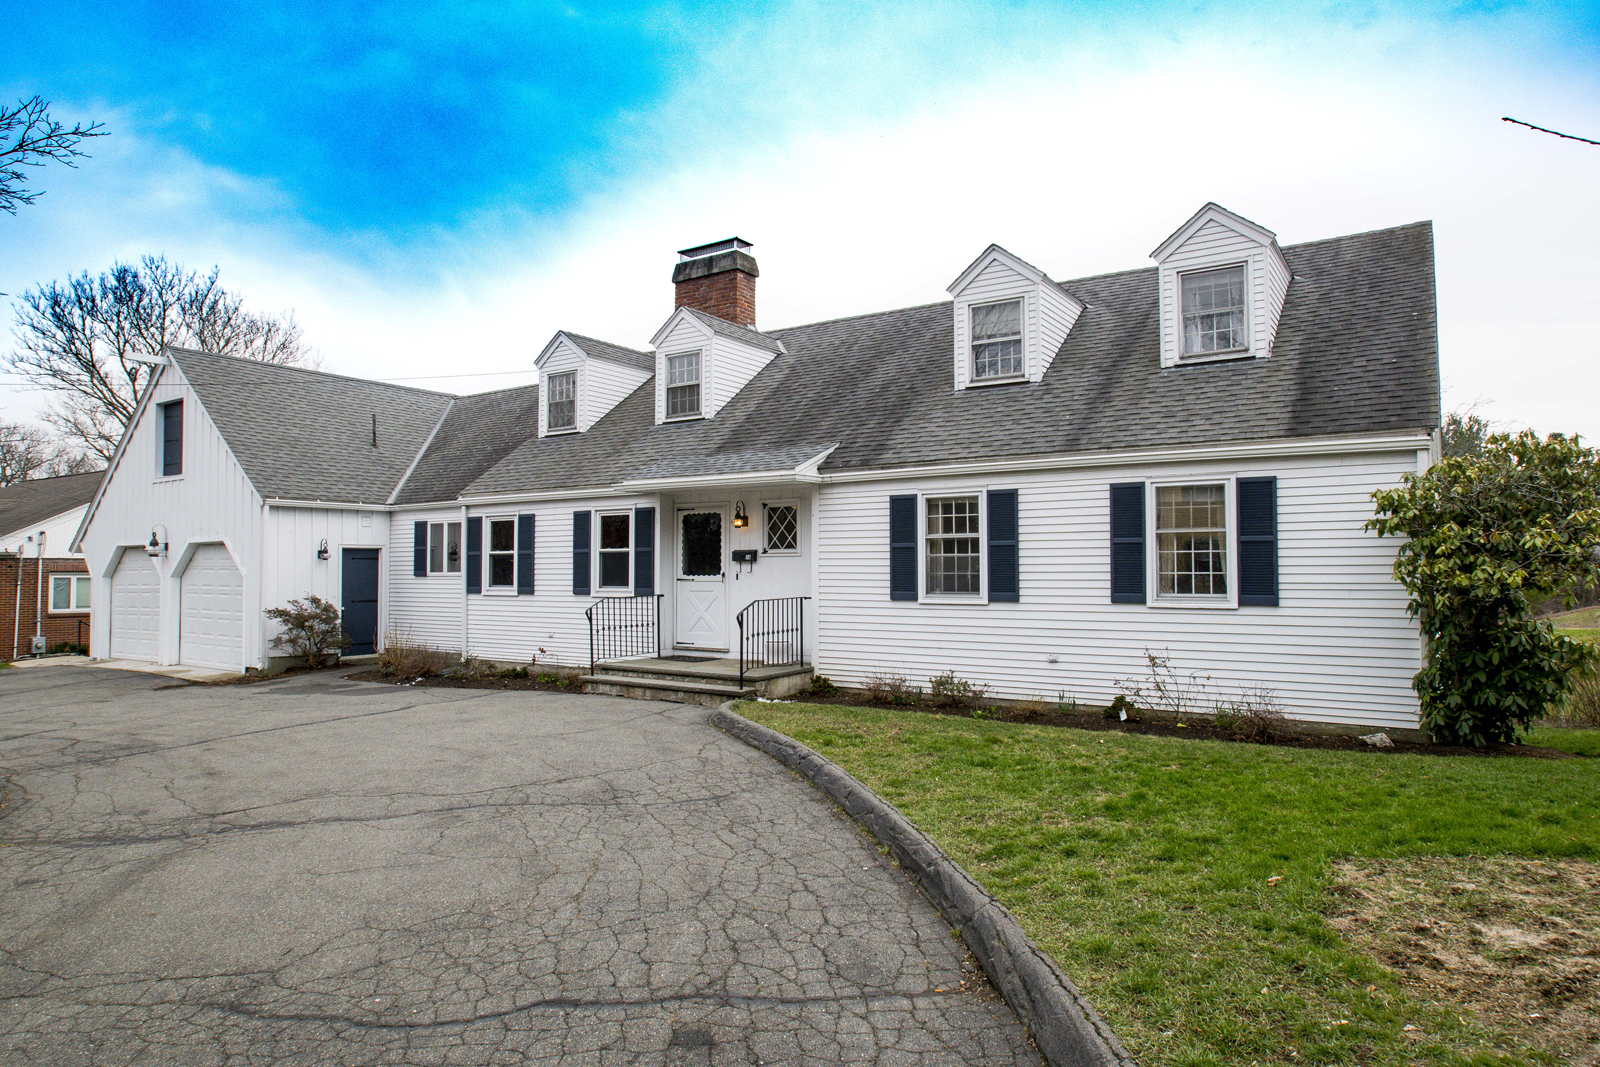 sales property at 1C Blanchard Road - Cambridge, MA